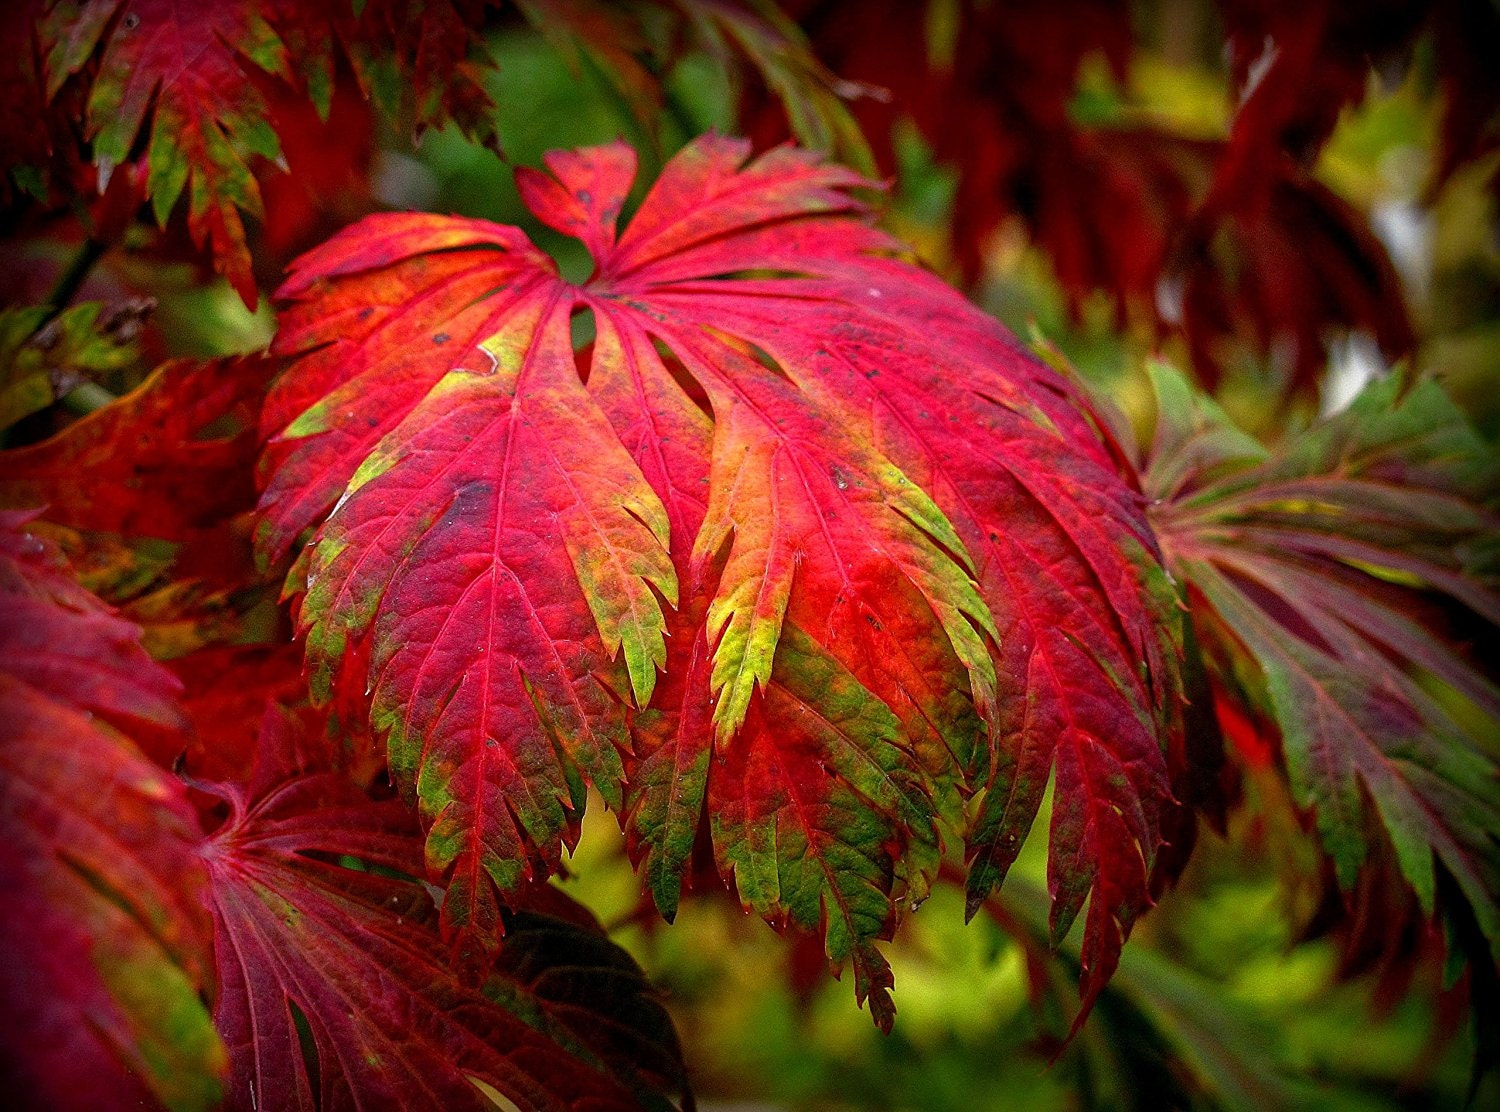 How to care for a fern leaf japanese maple - Dancing Peacock Fern Leaf Japanese Maple Japanese Maple Aconitifolium 3 Year Live Plant